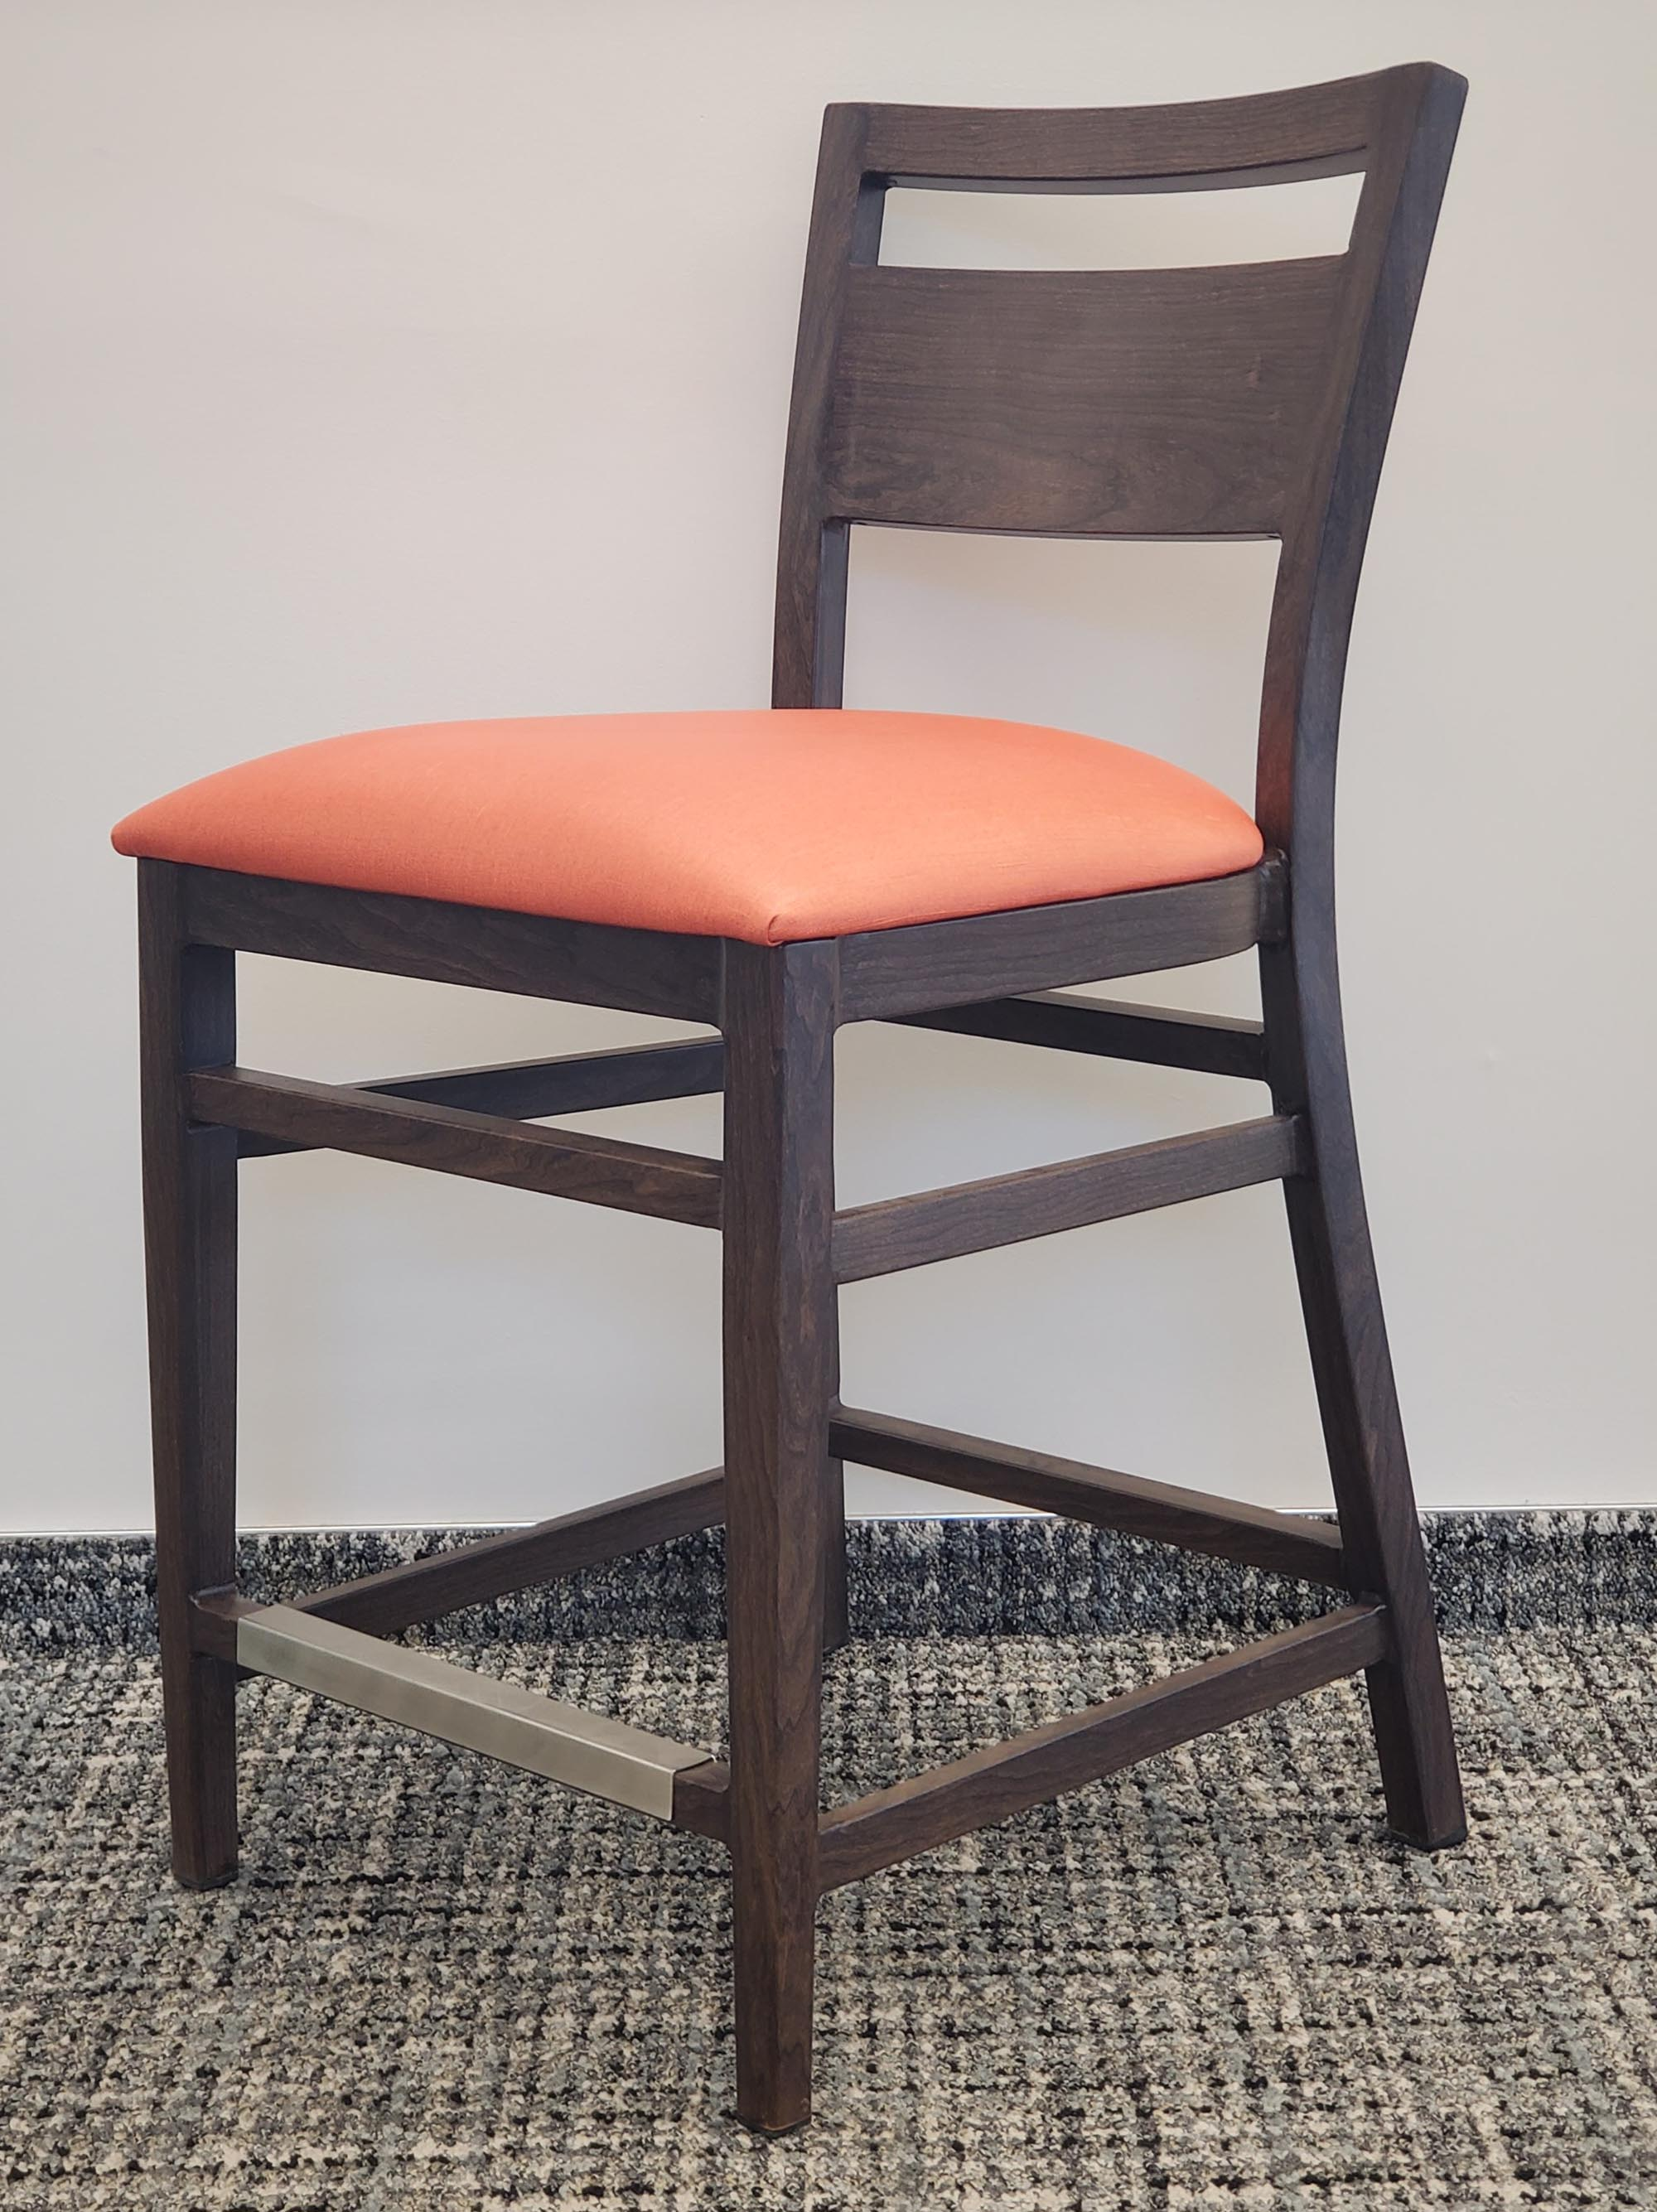 Senova Chair